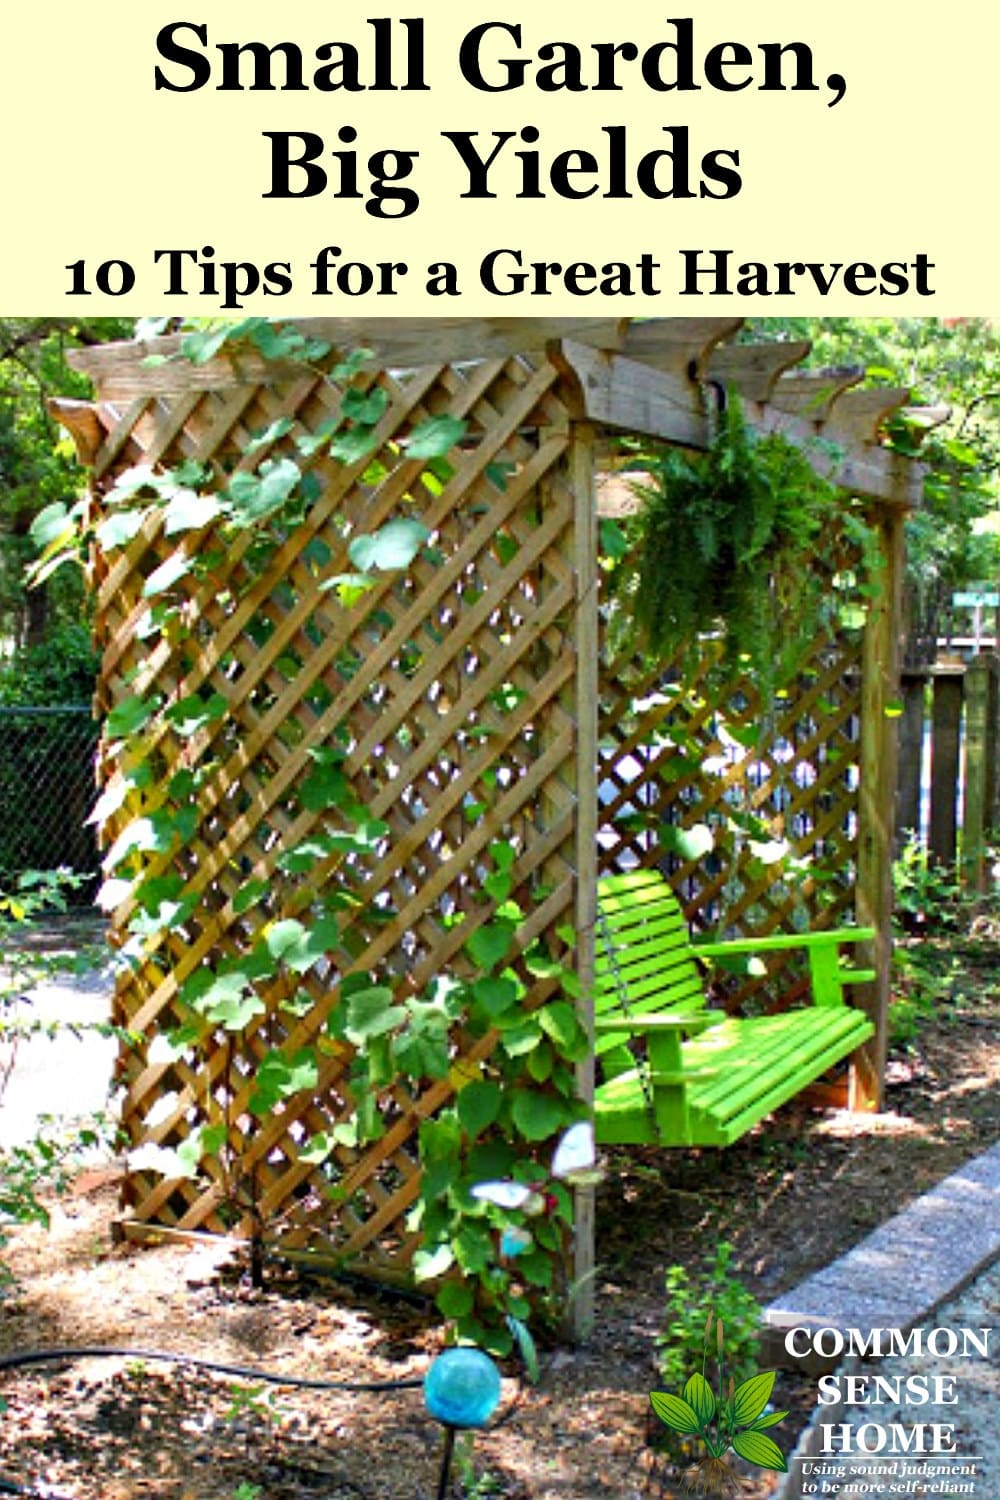 Vining plants on trellis over swing in small garden edible landscape